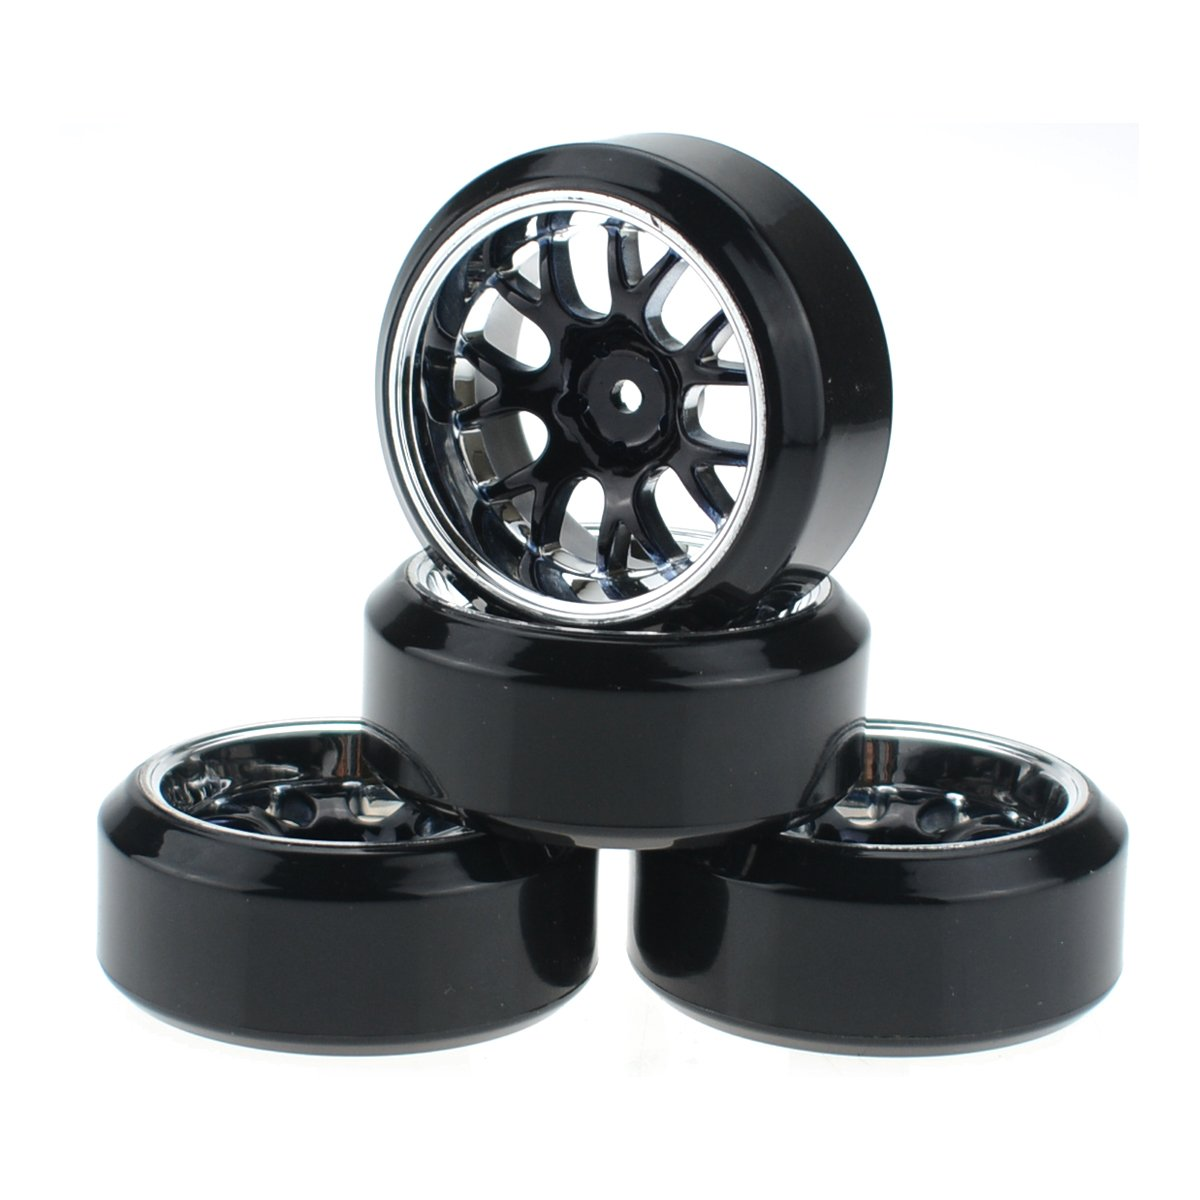 HobbyMarking 4Pcs RC 1//10 On-Road Car 12mm HEX Tires Hard Tyre and Wheel for Traxxas HSP Tamiya HPI Kyosho Drifting Car MEIKE